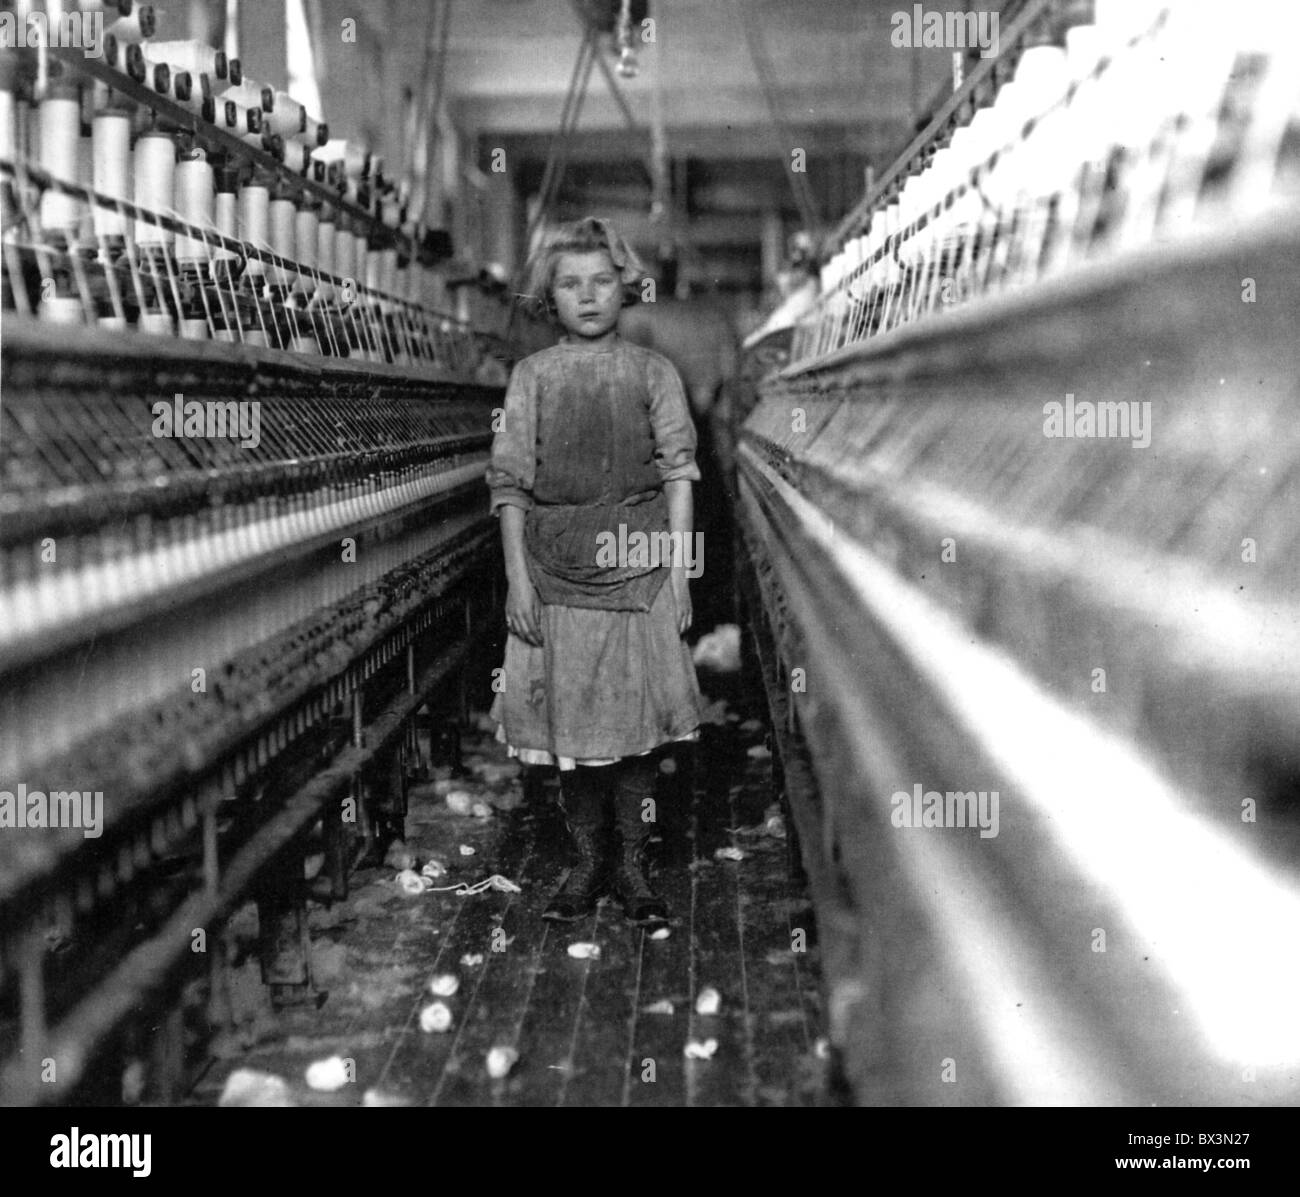 American Child Labour In A Cotton Spinning Mill